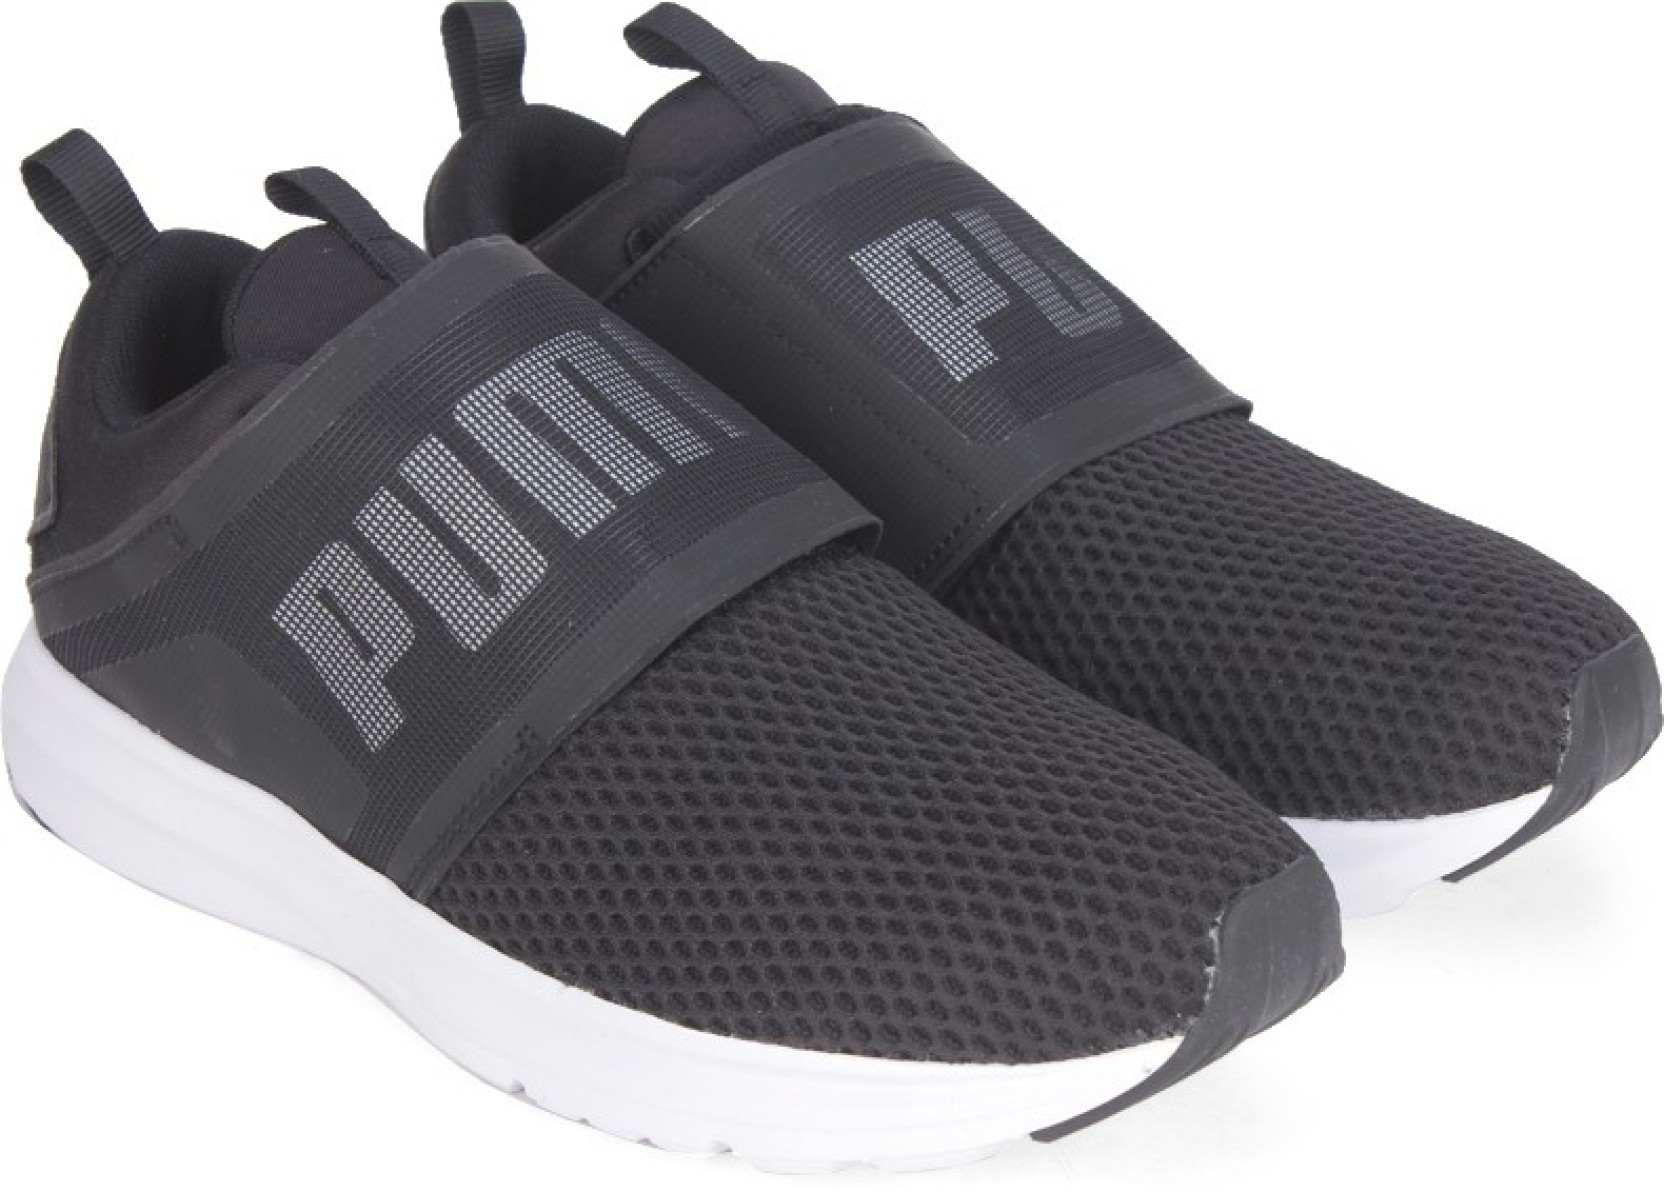 Puma Enzo Strap Wn's Running Shoes For Women